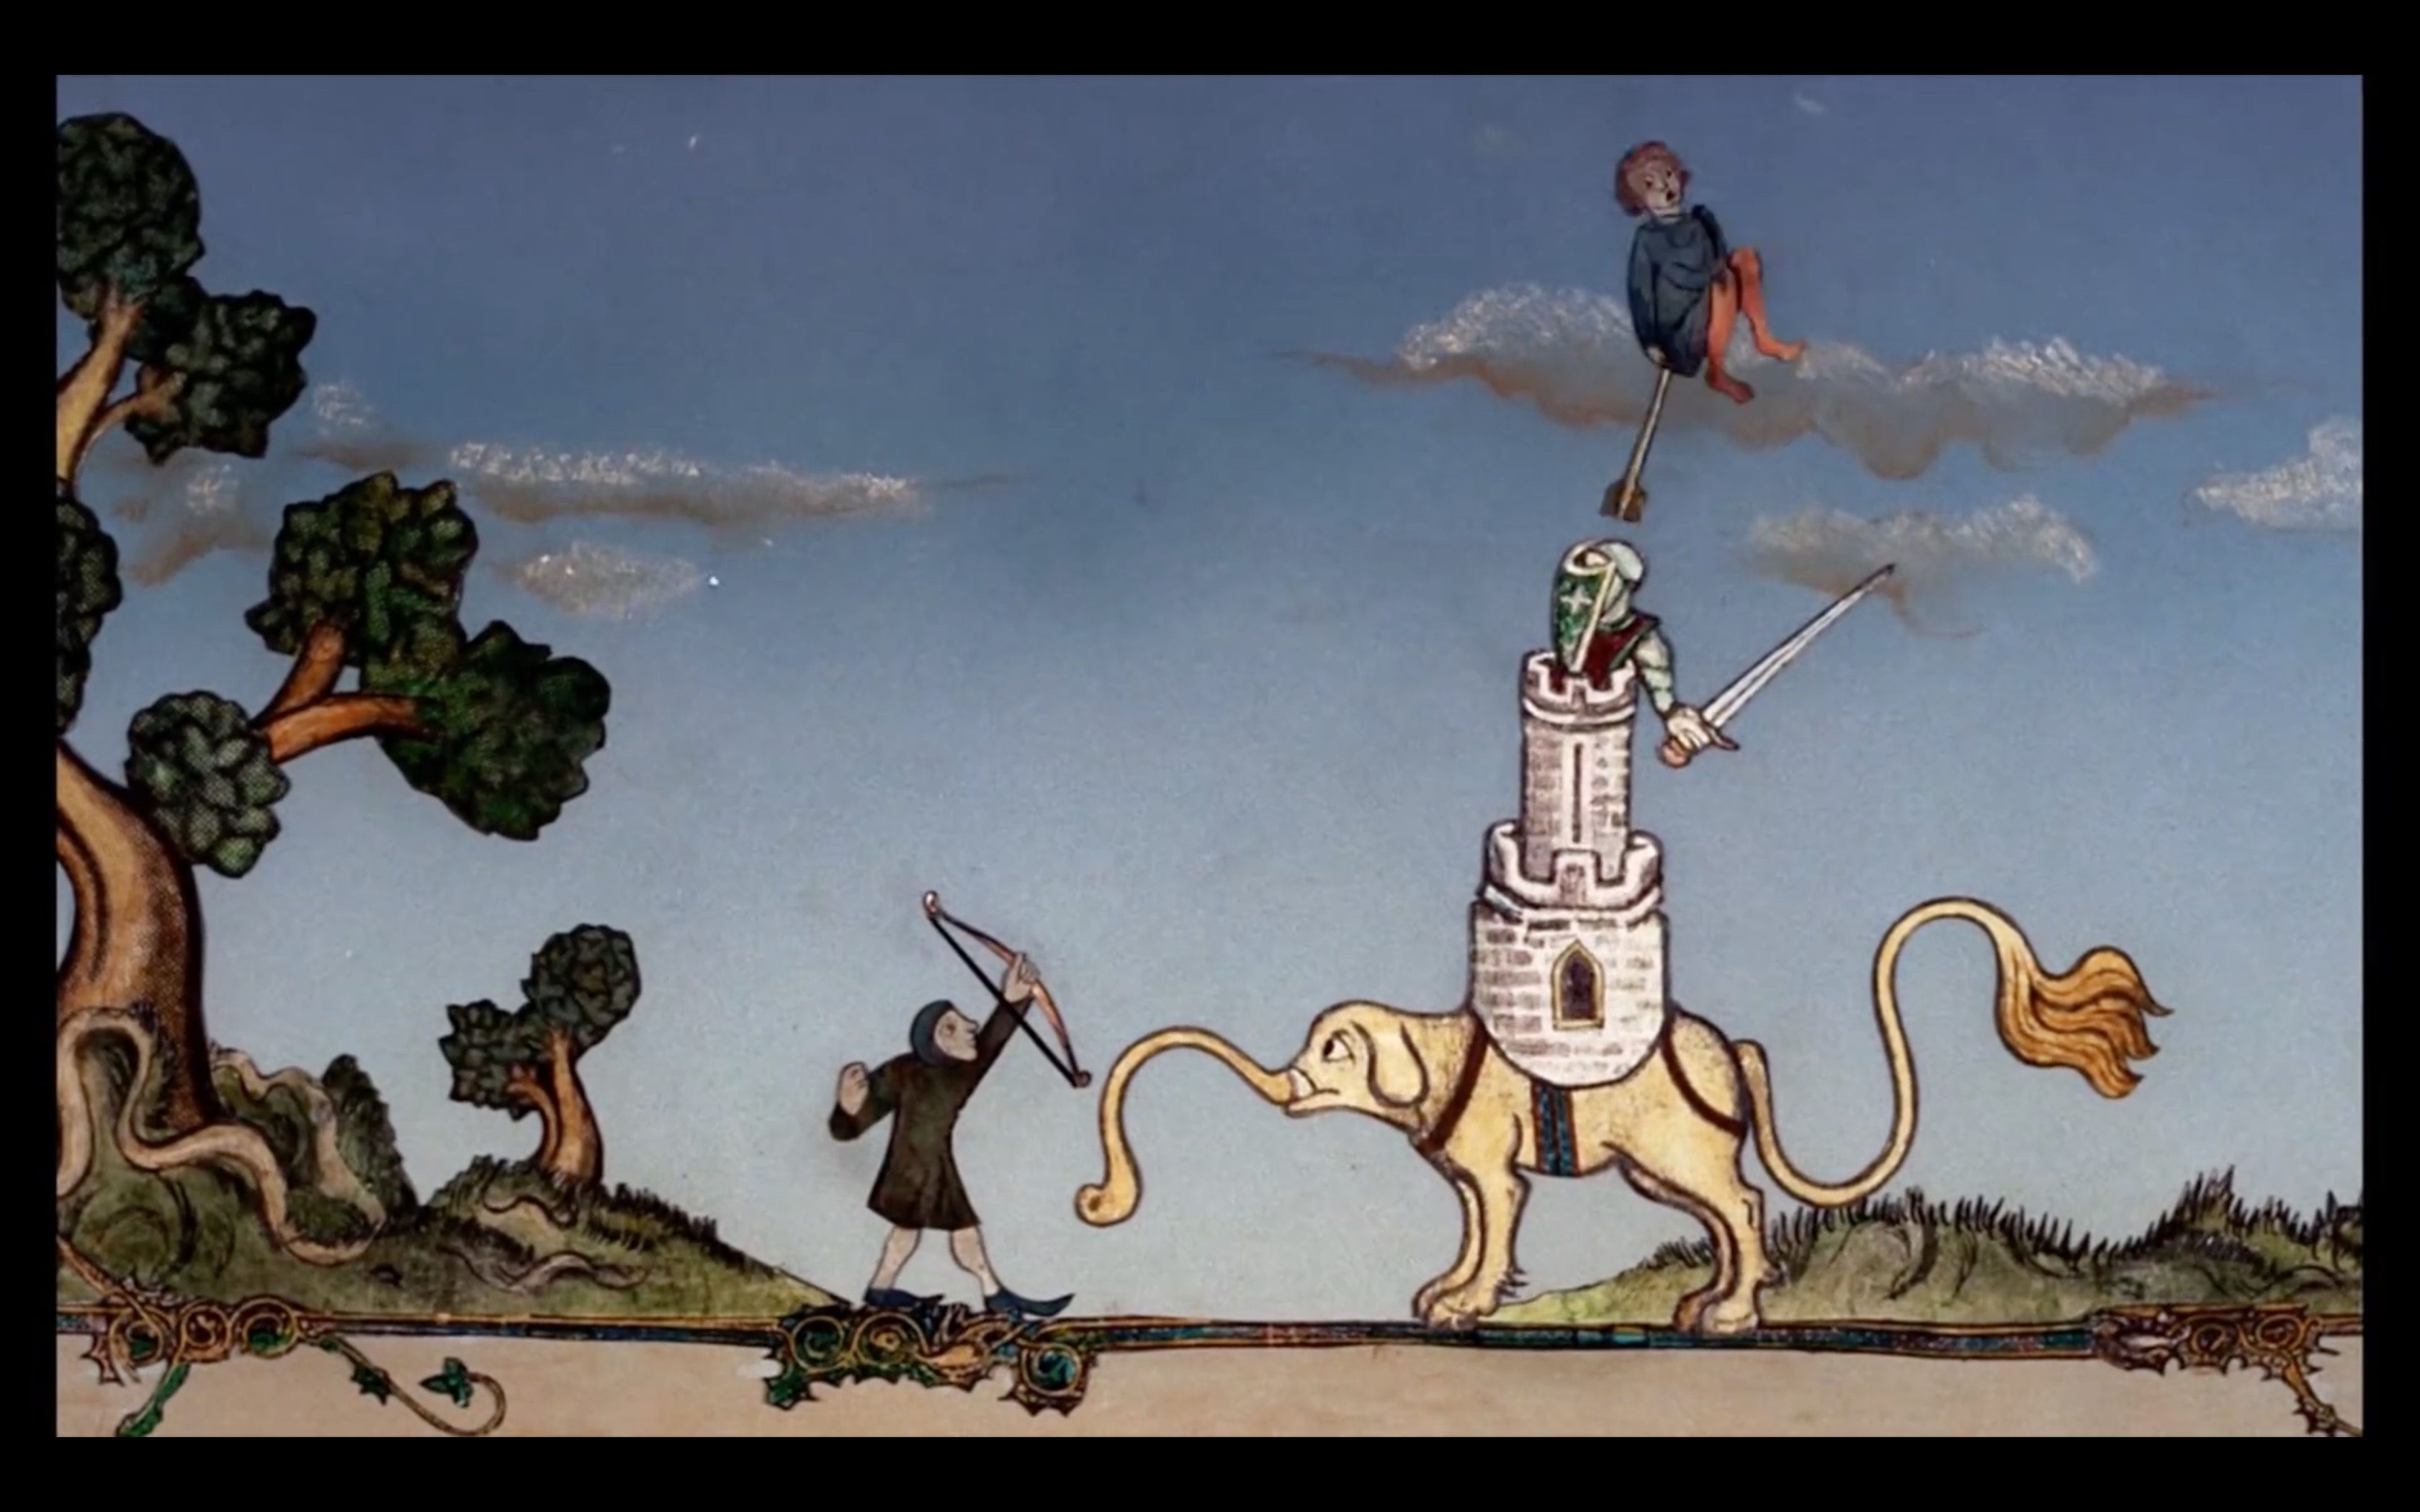 Terry Gilliam's Deleted Animations from Monty Python & The